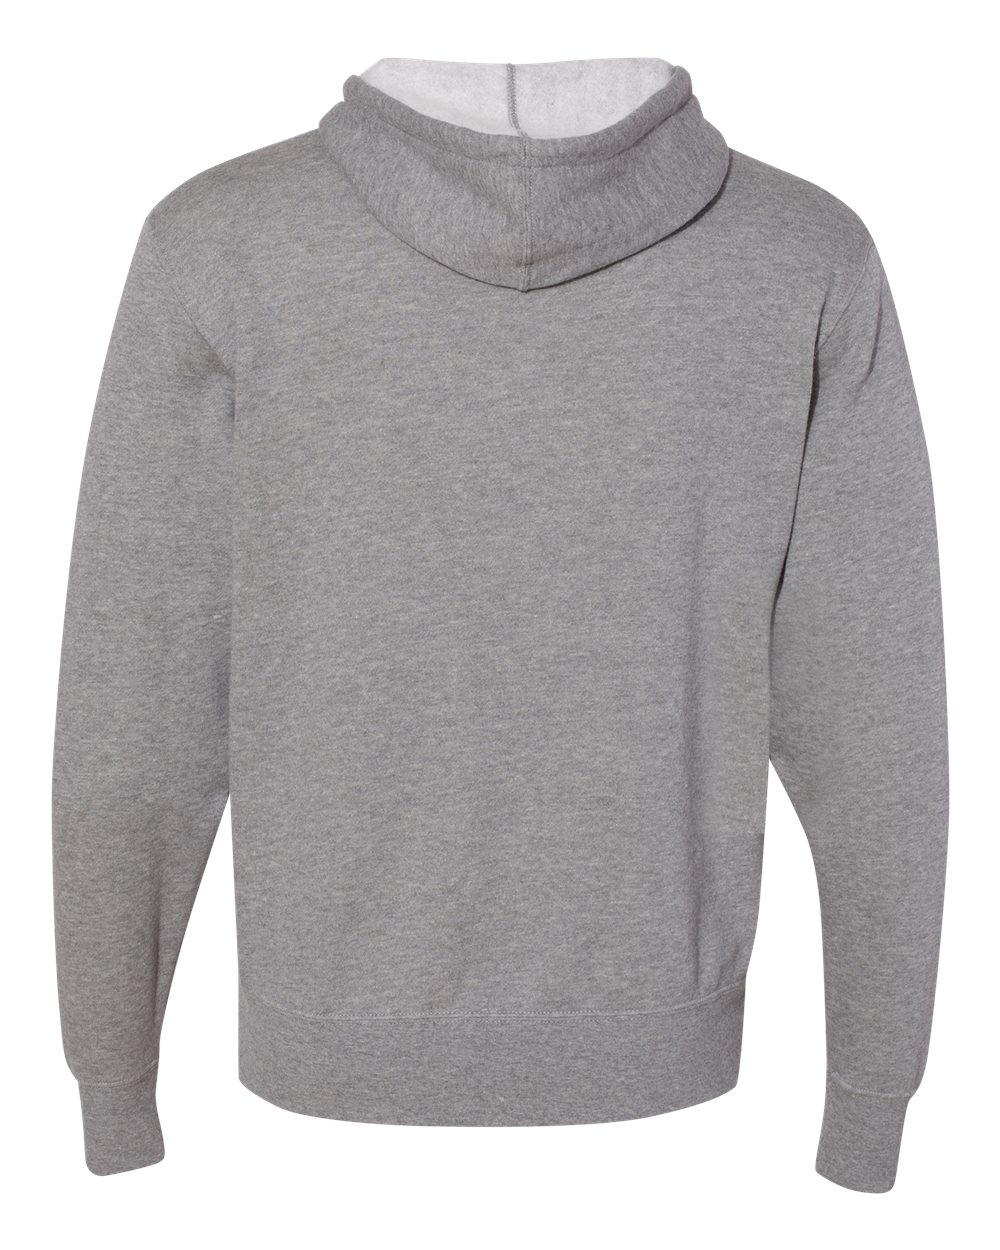 Independent-Trading-Co-Unisex-Hooded-Pullover-Blank-Plain-AFX90UN-up-to-3XL thumbnail 22